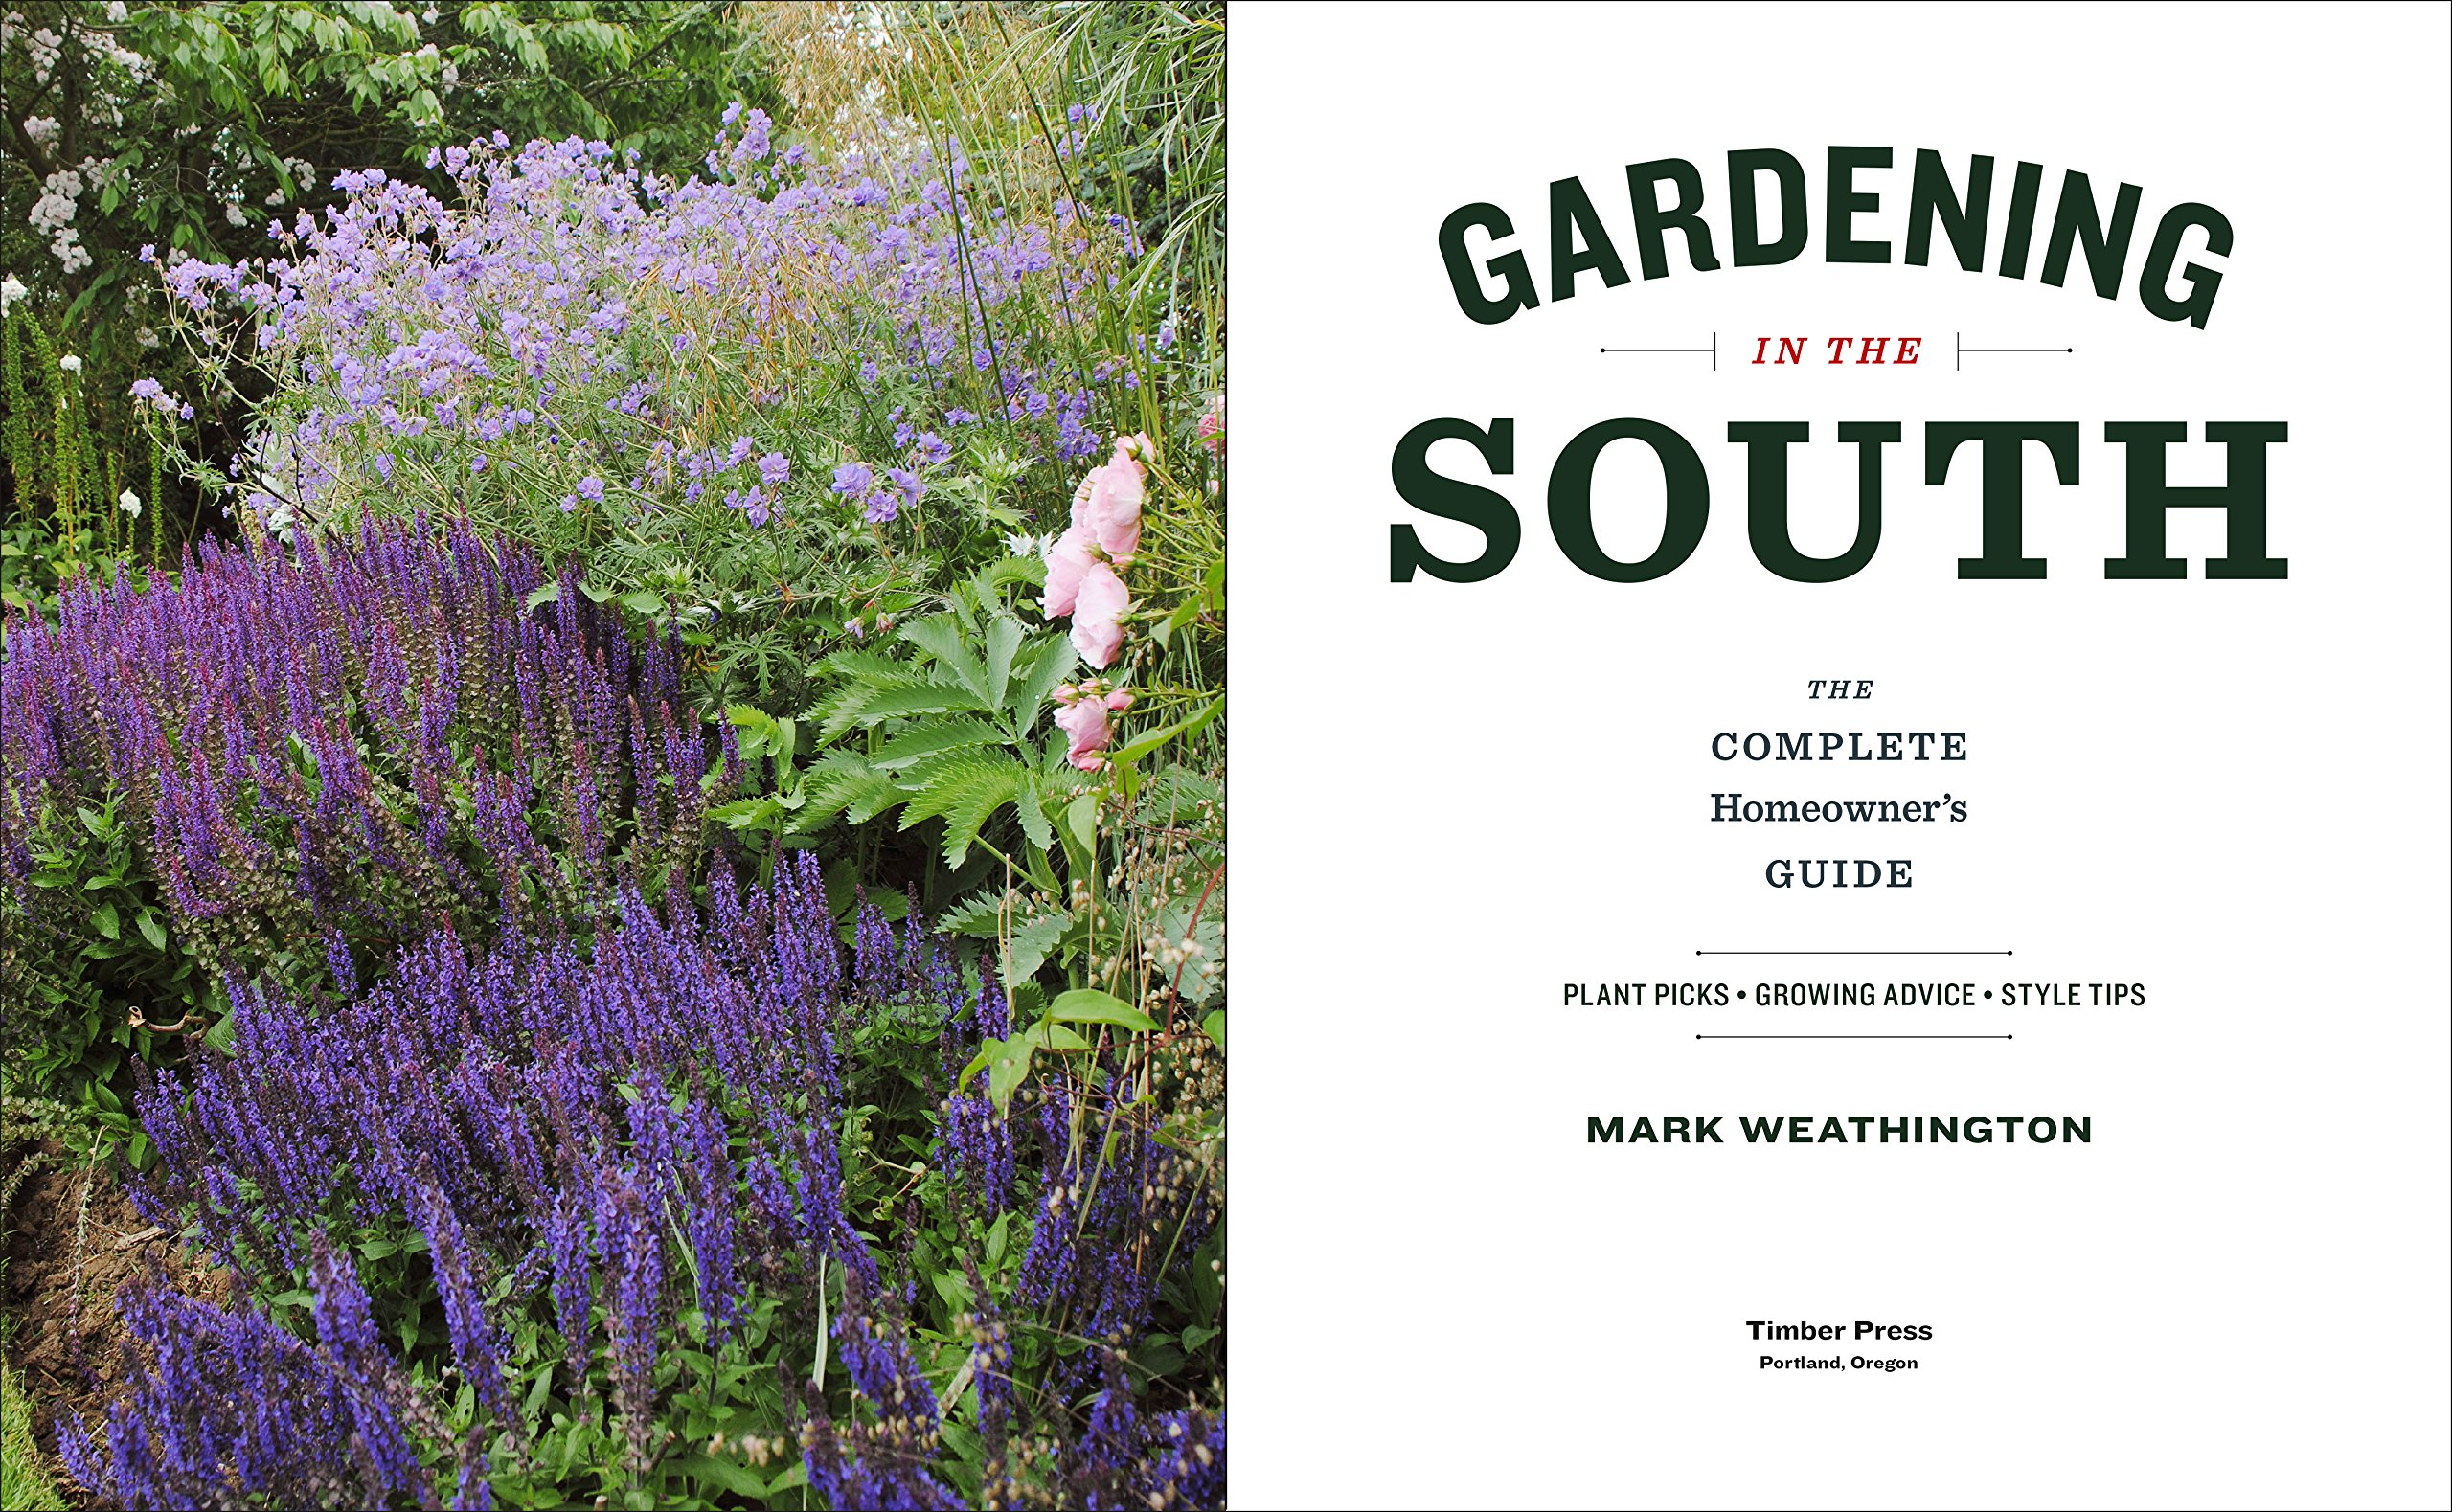 Gardening In The South: The Complete Homeowneru0027s Guide: Mark Weathington:  9781604695915: Amazon.com: Books